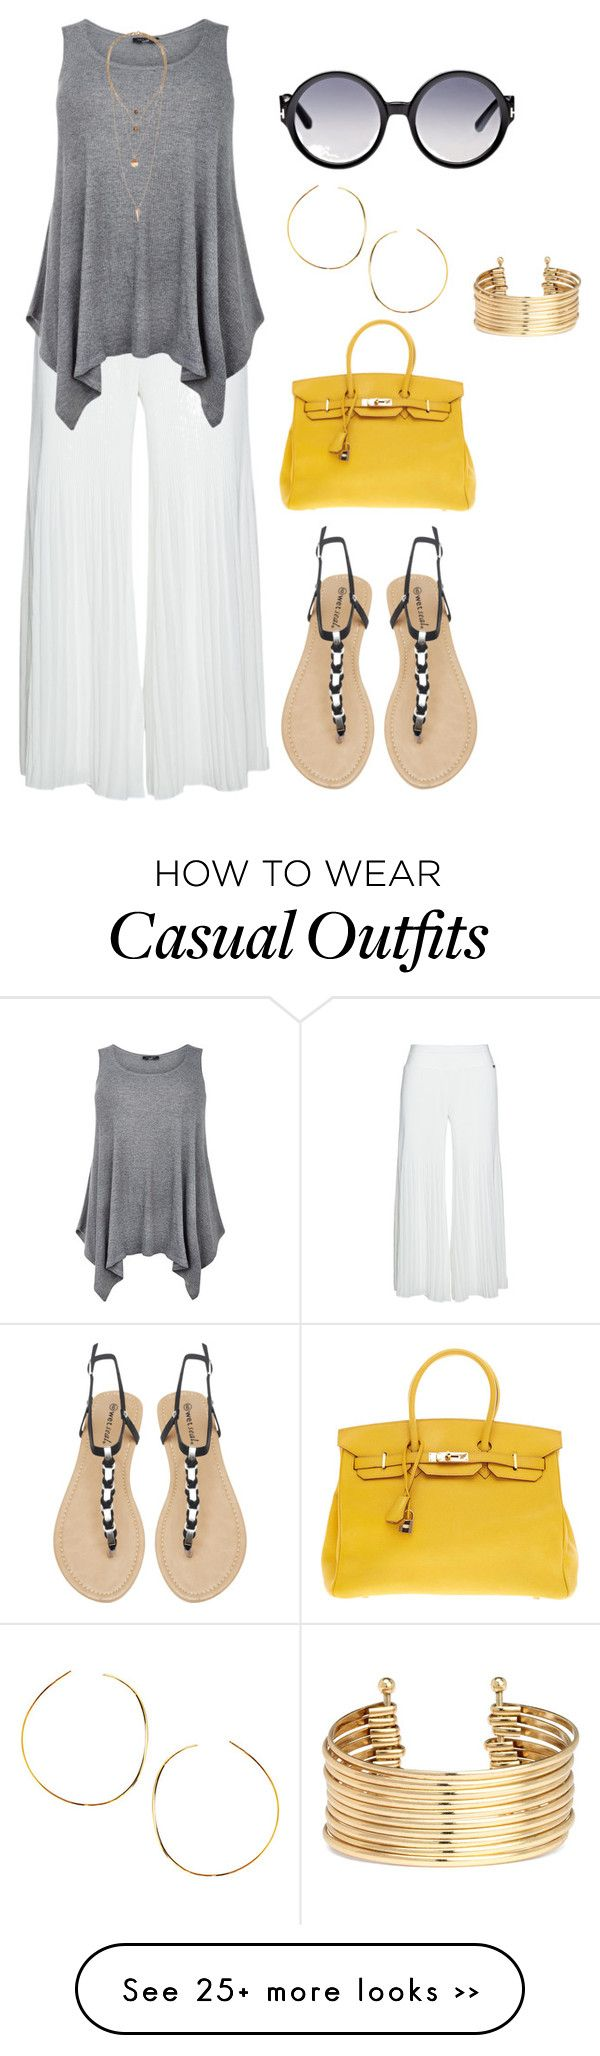 """""""plius size, summer casual day out"""" by kristie-payne on Polyvore featuring Mat, Tom Ford, Wet Seal, Hermès, H&M and Lana"""